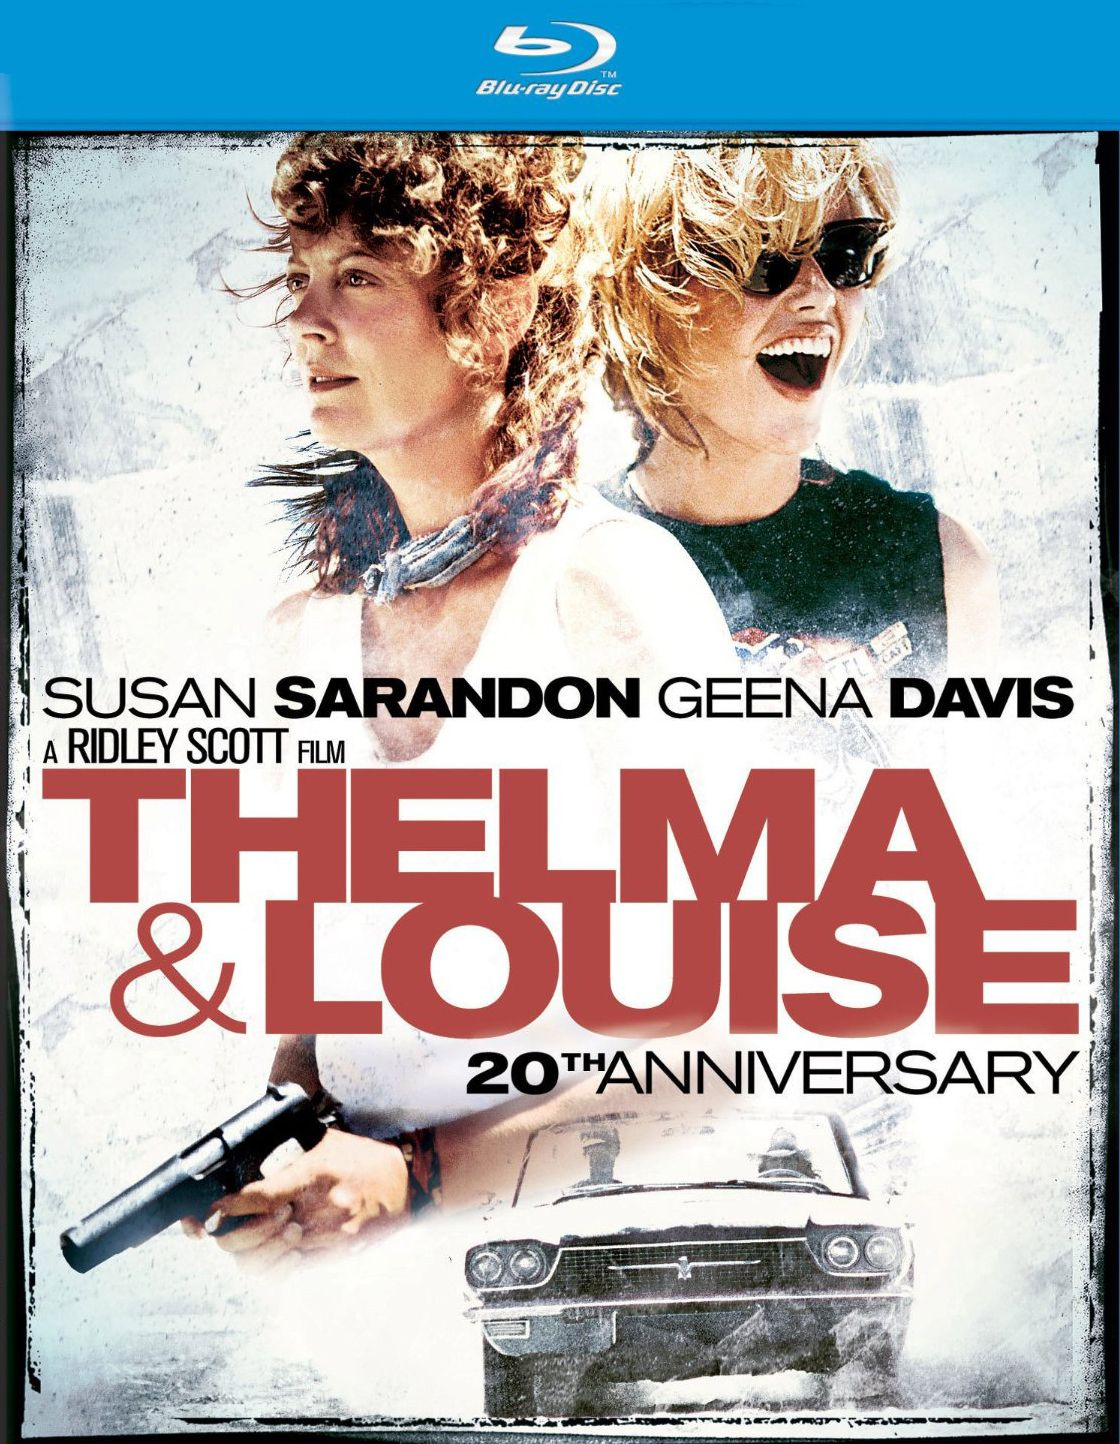 Publicity still for Thelma & Louise